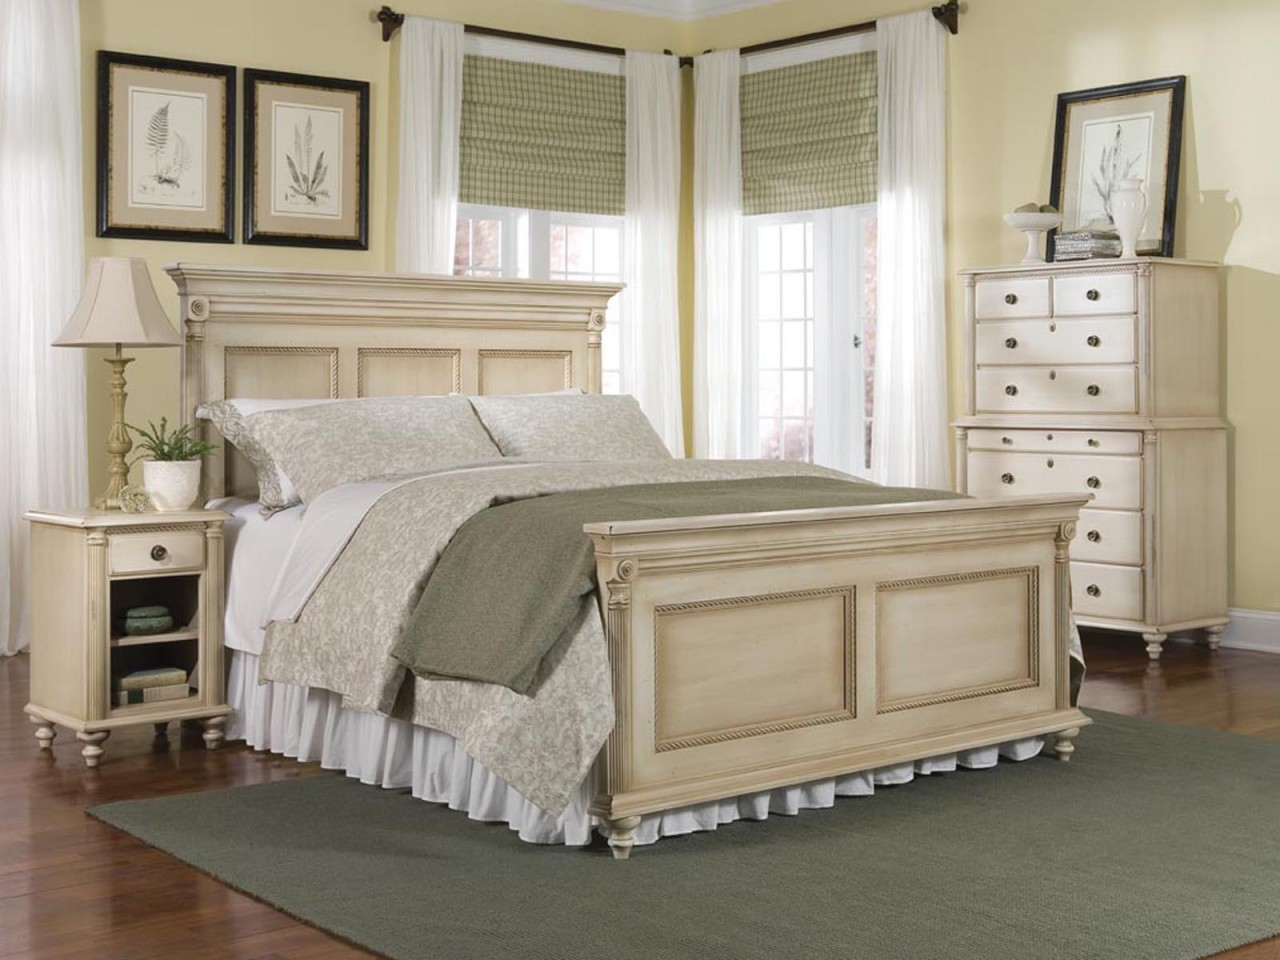 How to decorate a bedroom with cream bedroom furniture?